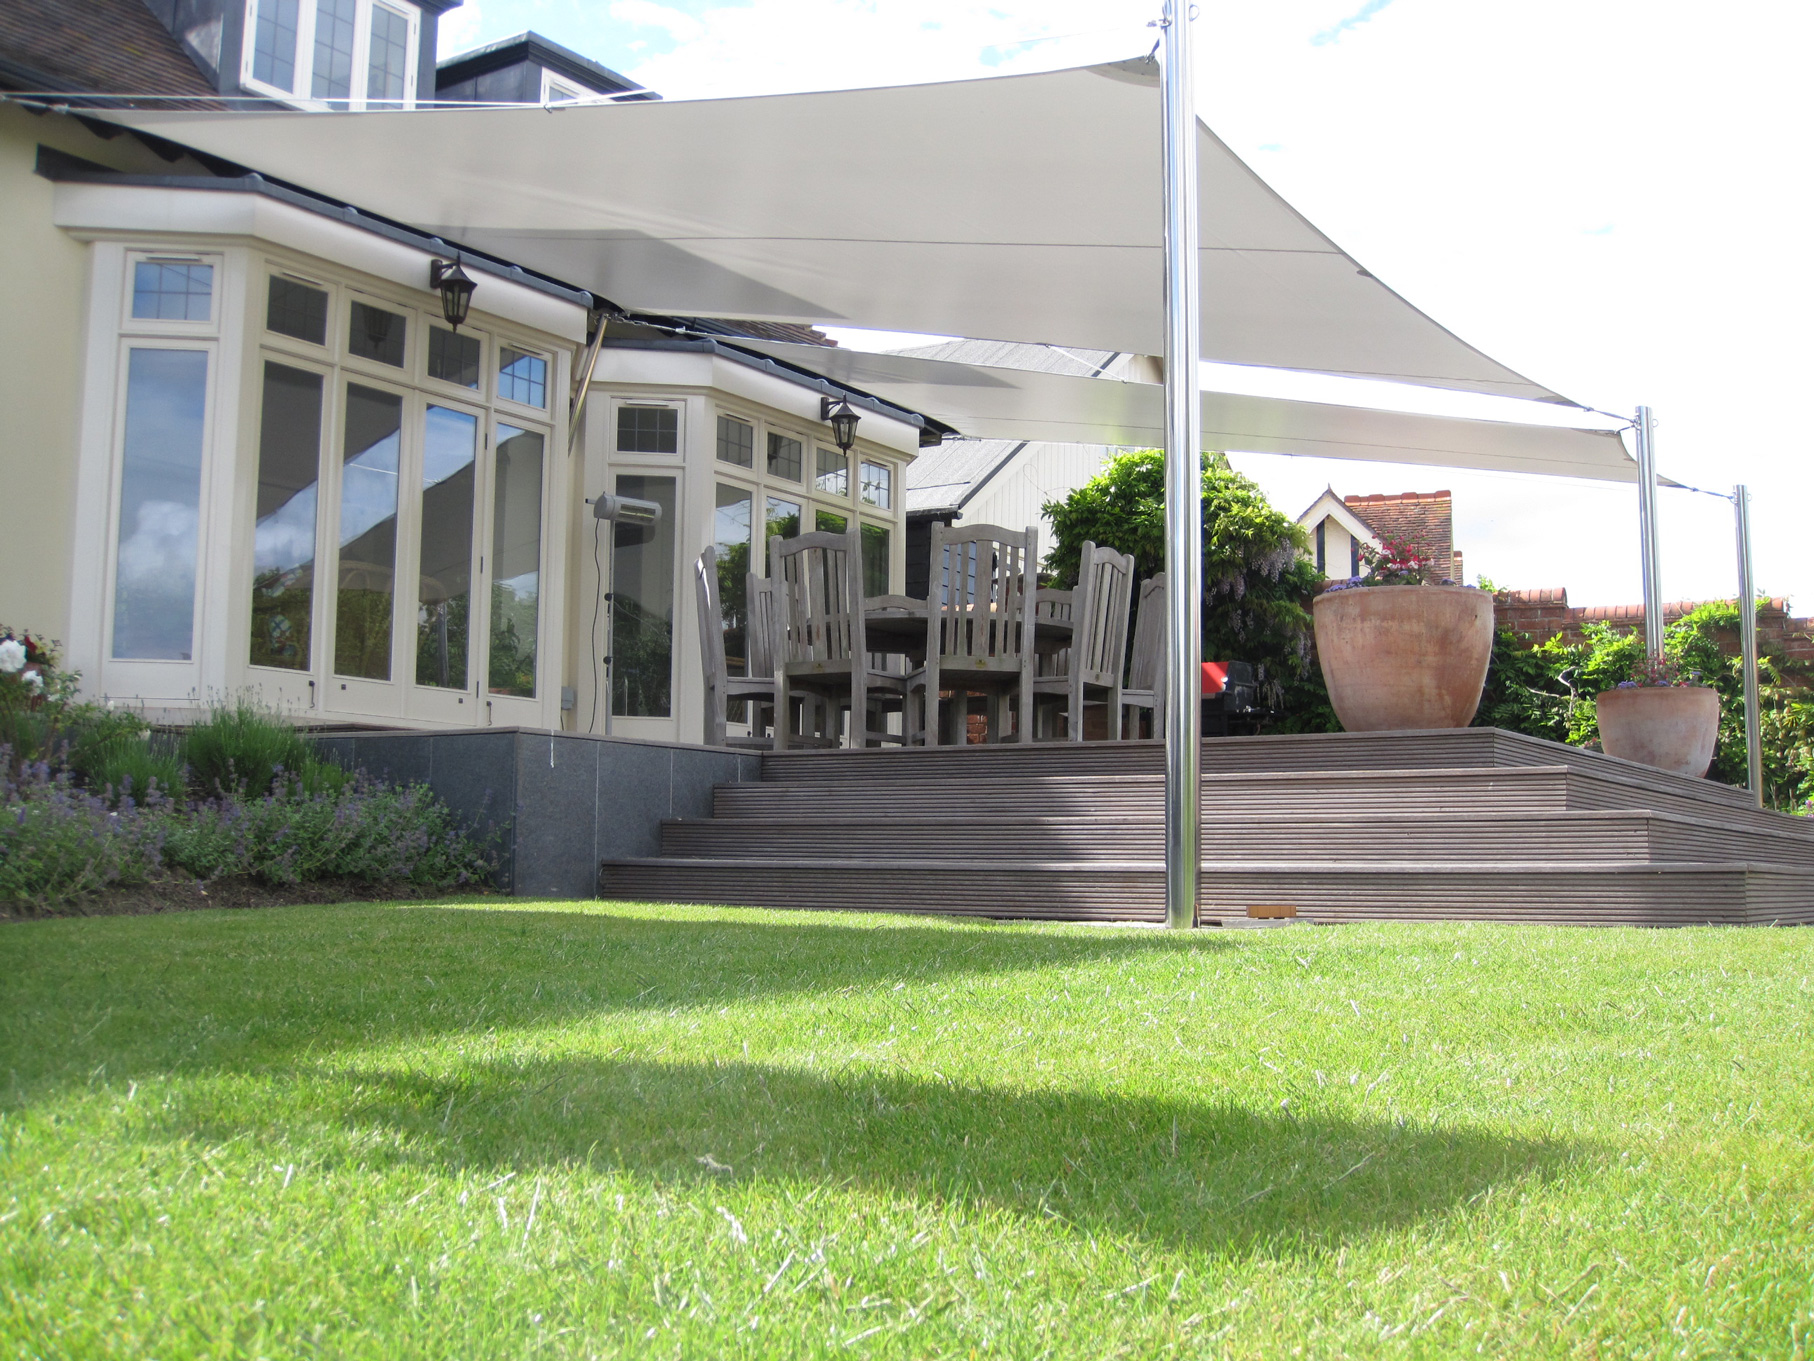 Shade Sails Expertly Designed And Installed By Alfresco365